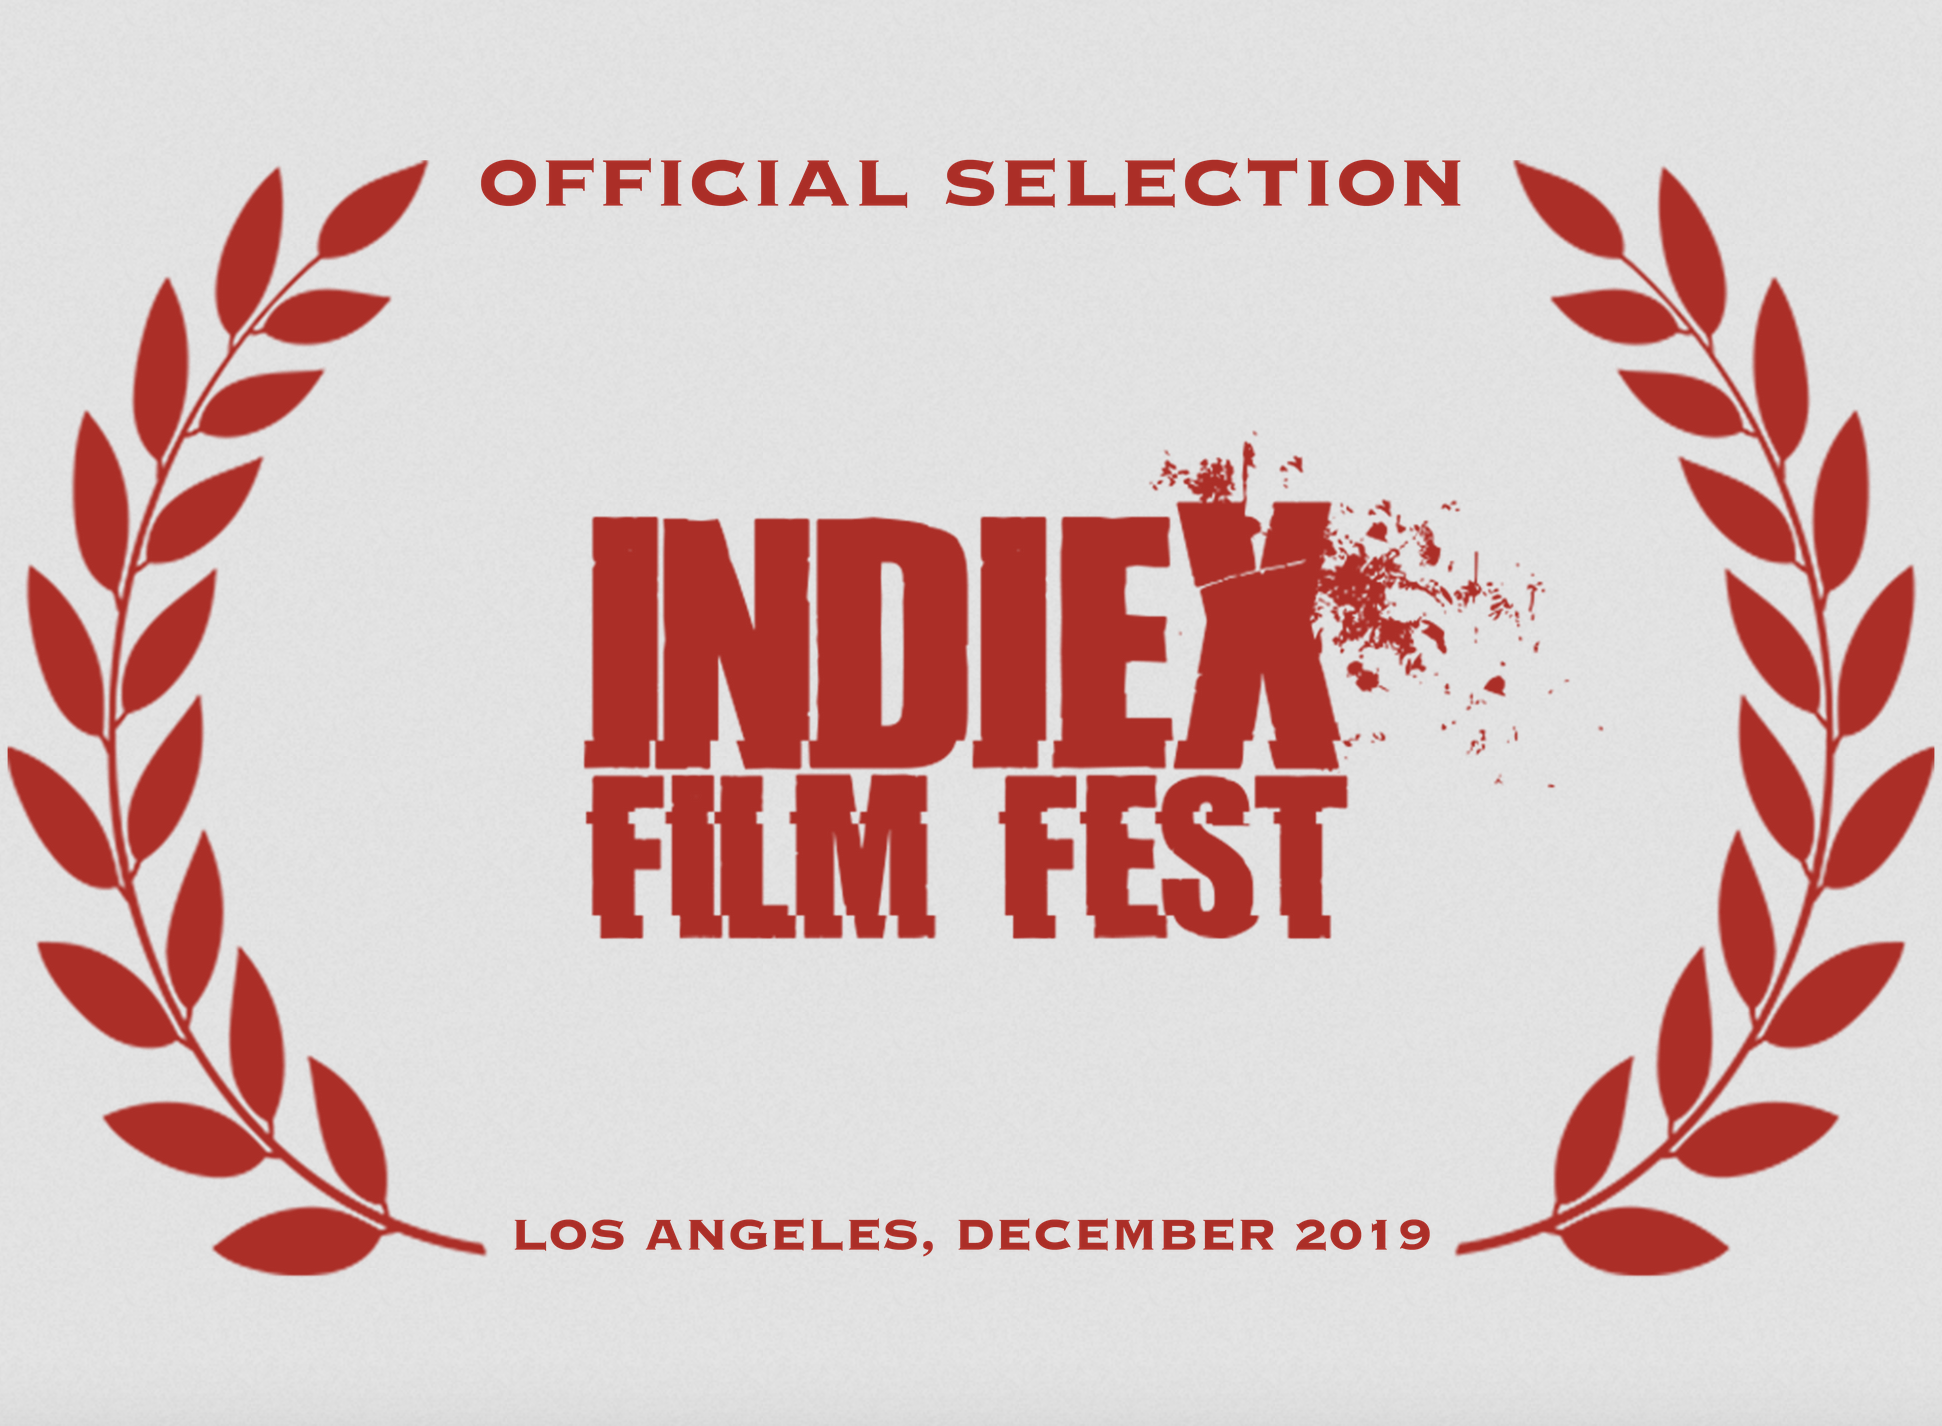 IndieFilmFest official selection